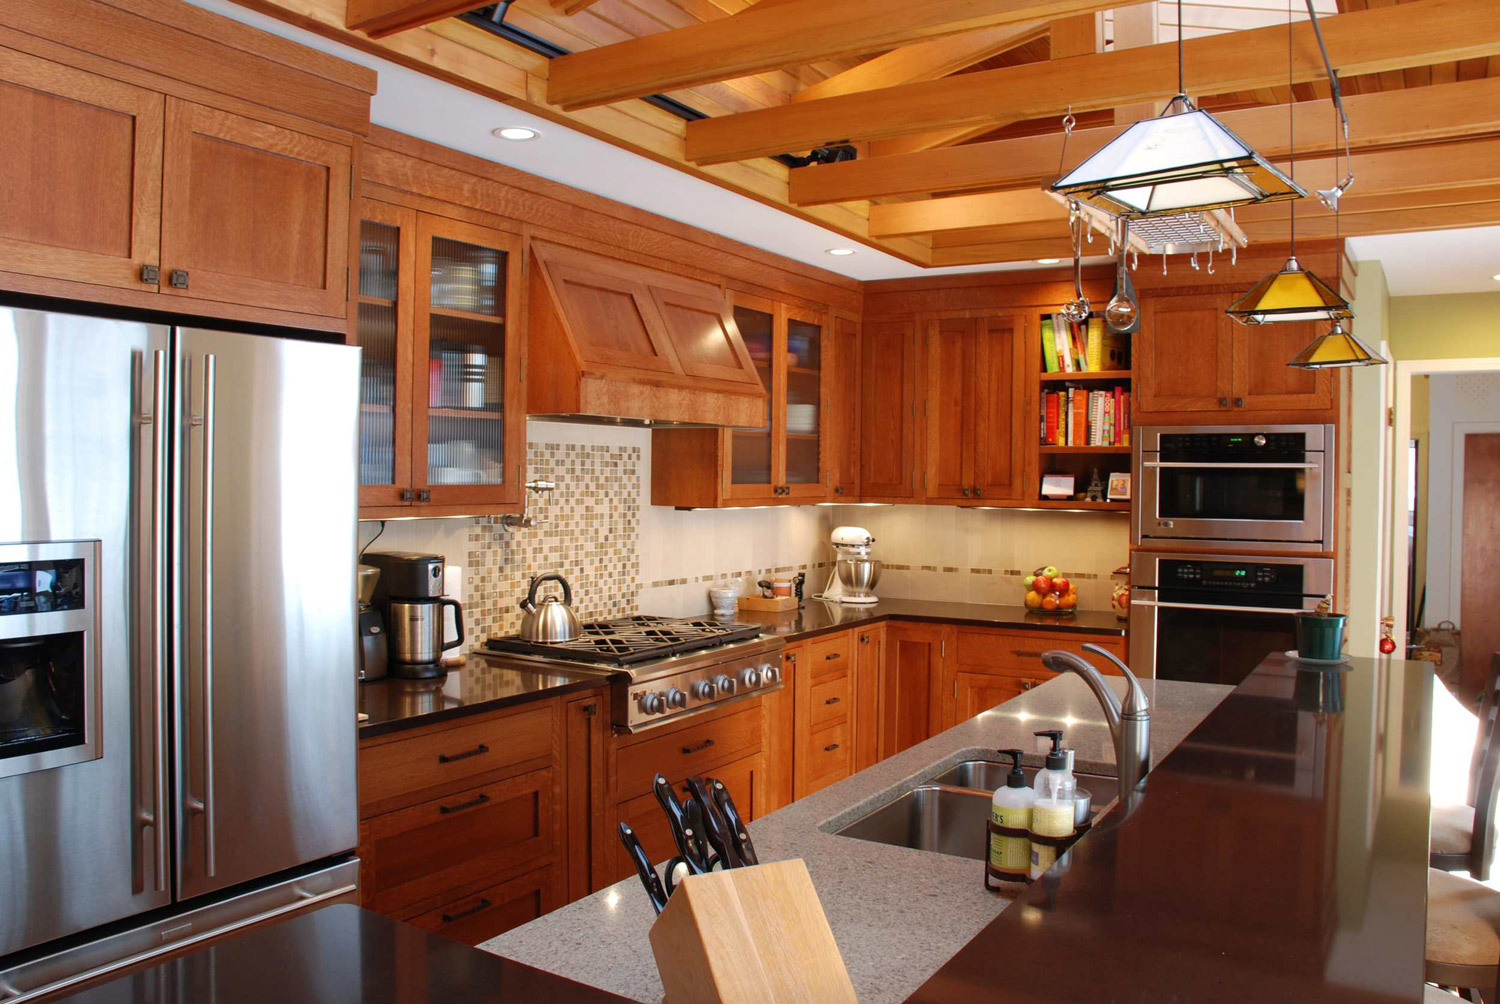 Learn The Qualities Of Natural Wood Used For Kitchen Cabinets Forward Design Build Remodel